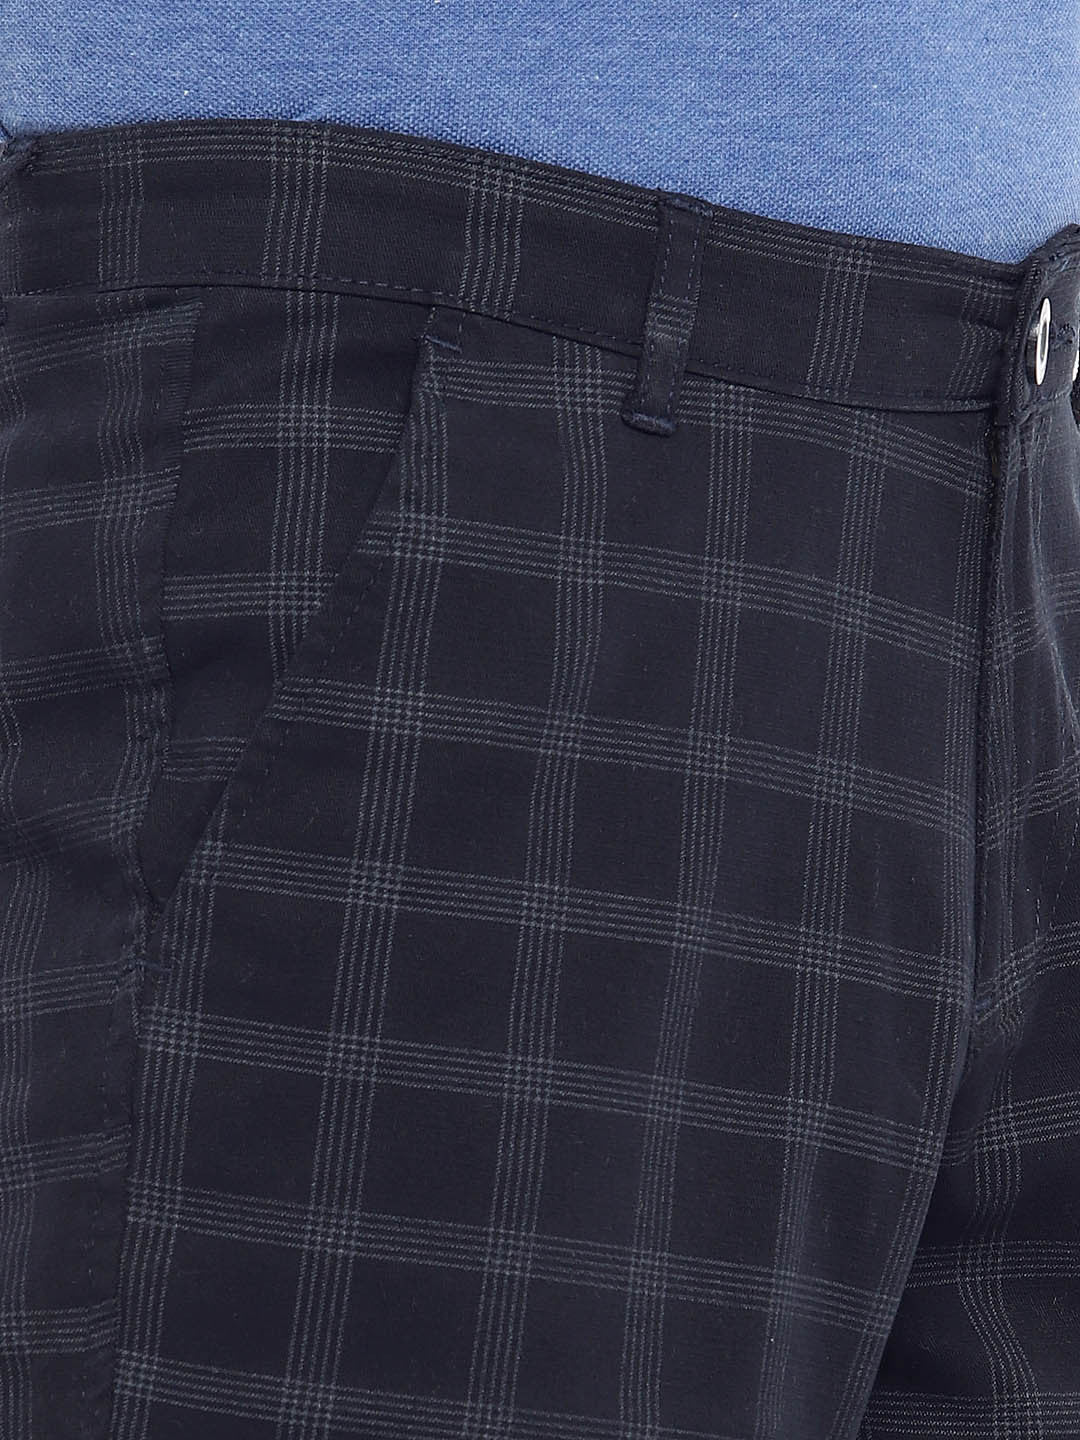 Navy Blue Checked Regular Fit Regular Shorts-5